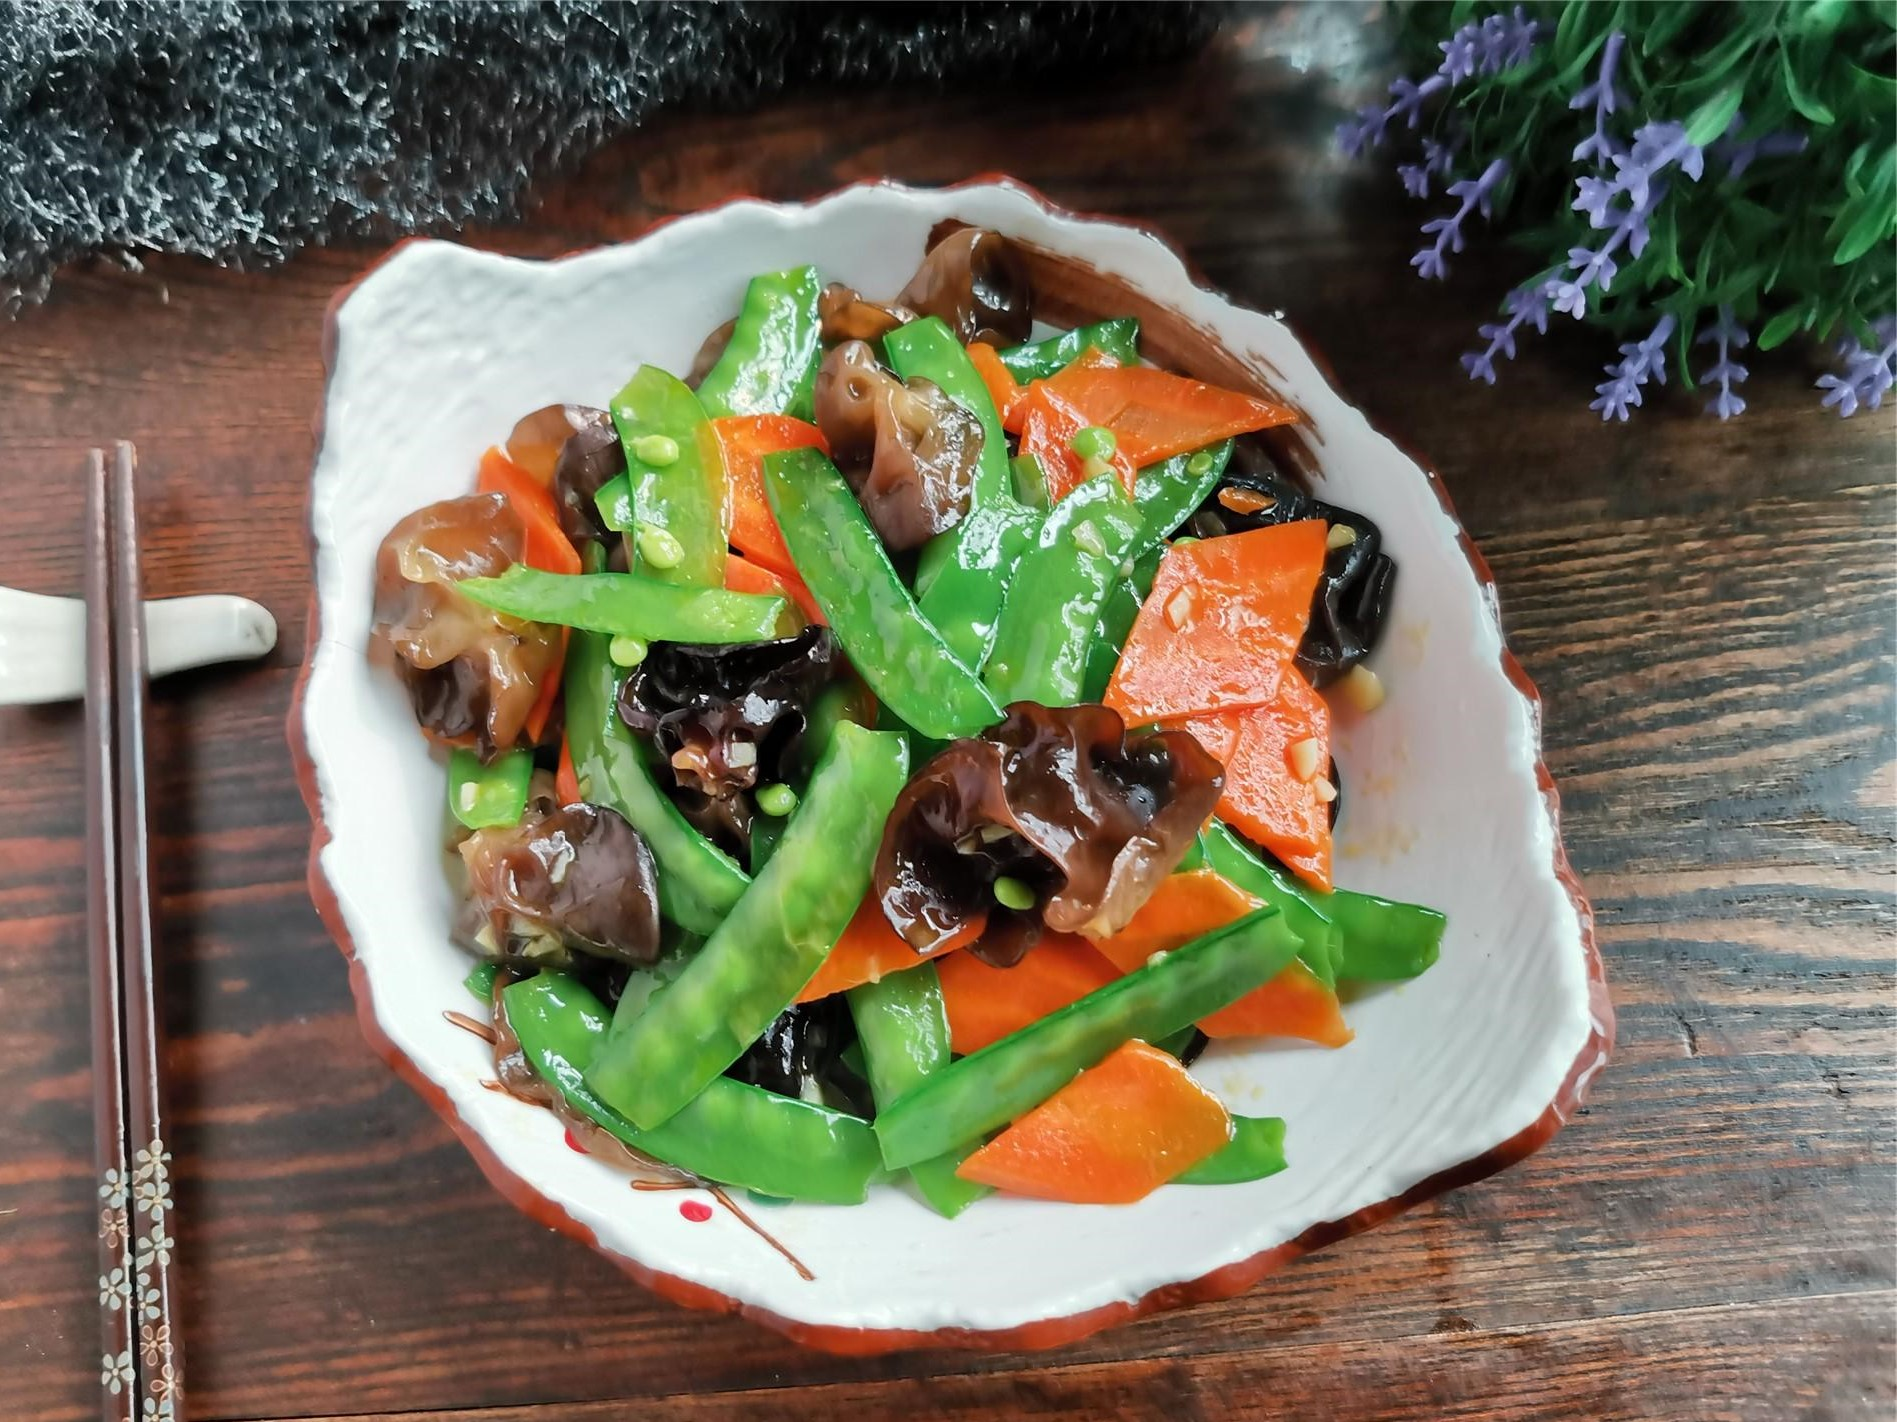 Fried Pea Pods With Black Fungus And Carrots Recipe 2021